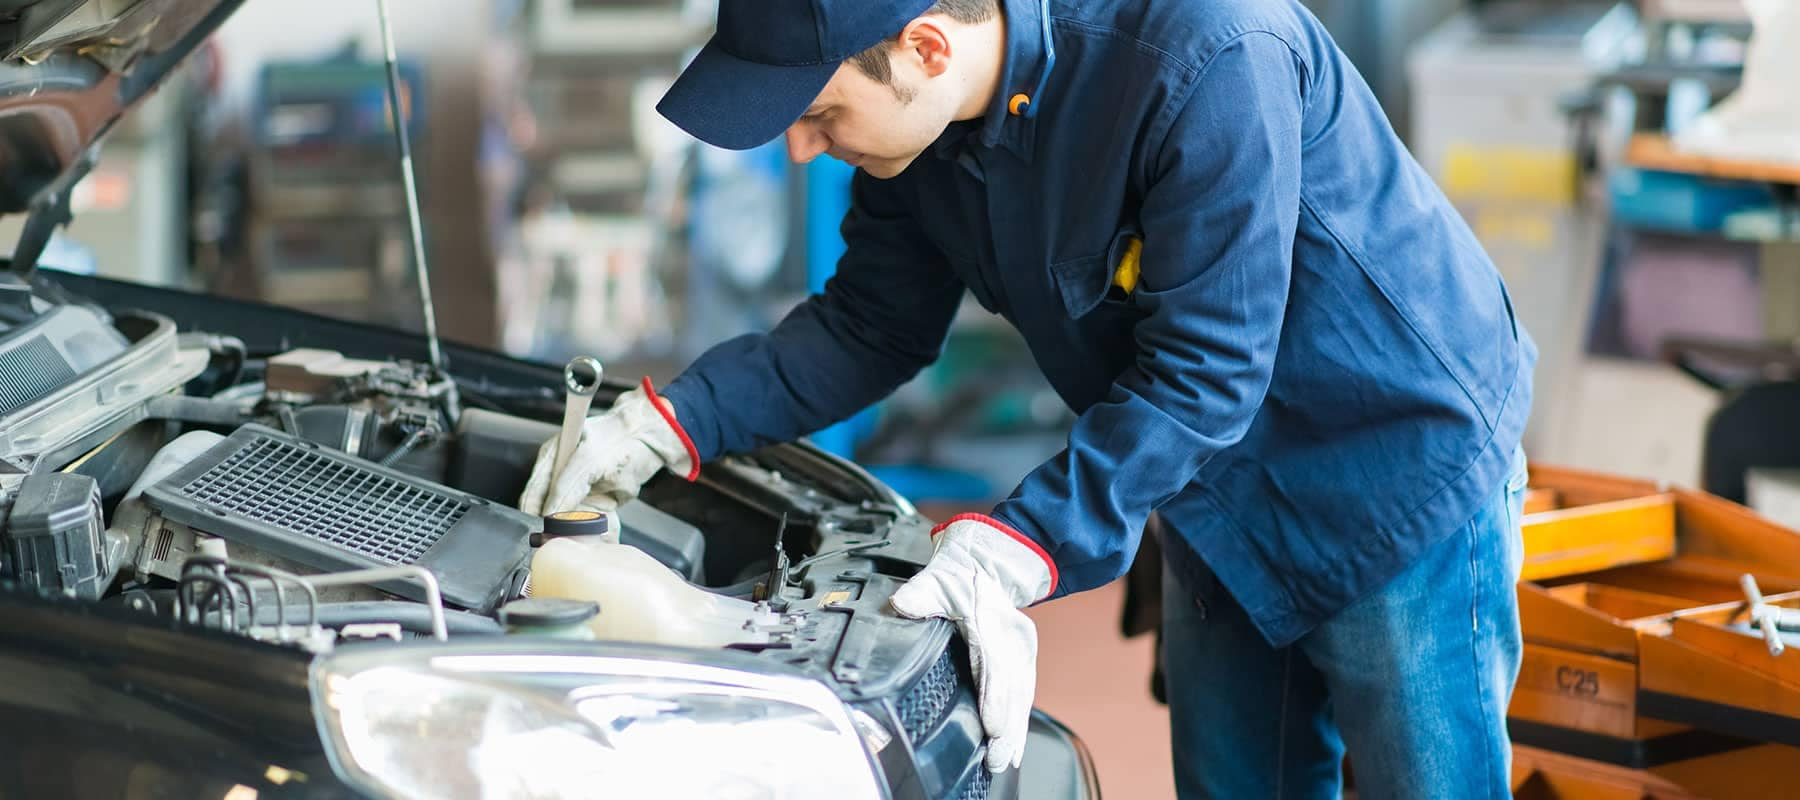 Service picture of technician working on car engine with a wrench